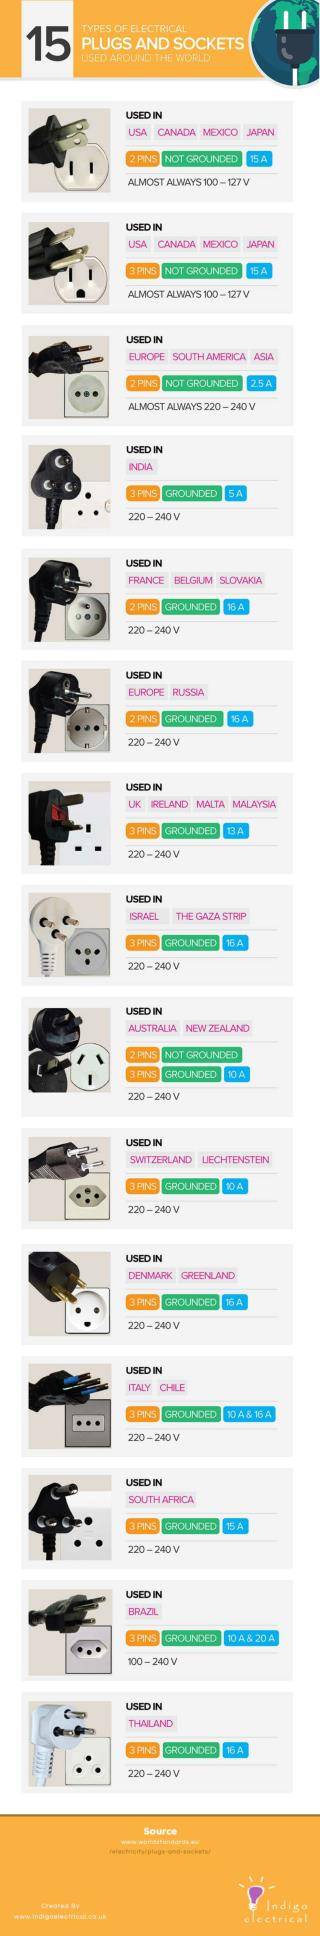 The 15 Types of Electrical Plugs and Sockets Used Around the World